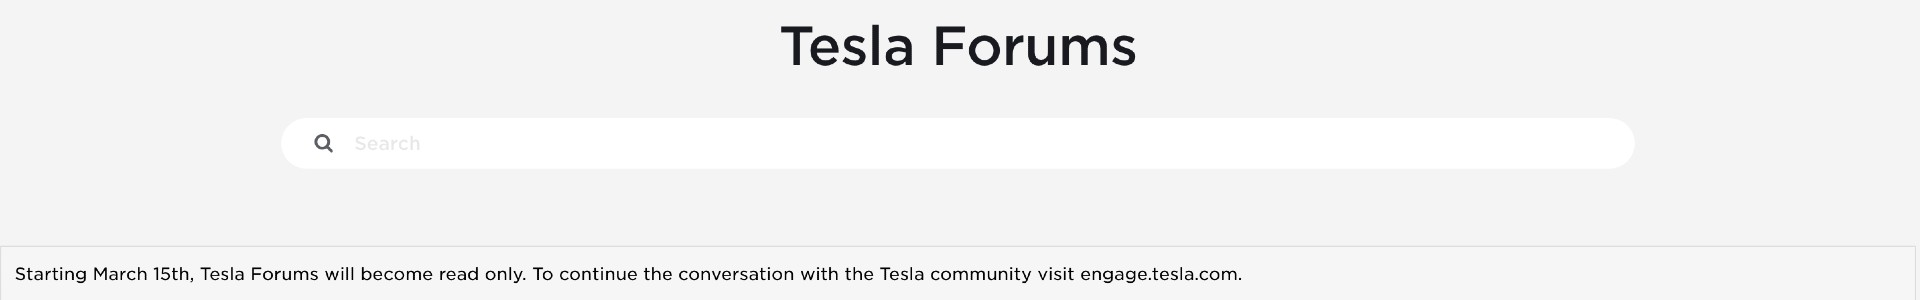 tesla-forums-march-15th-warning